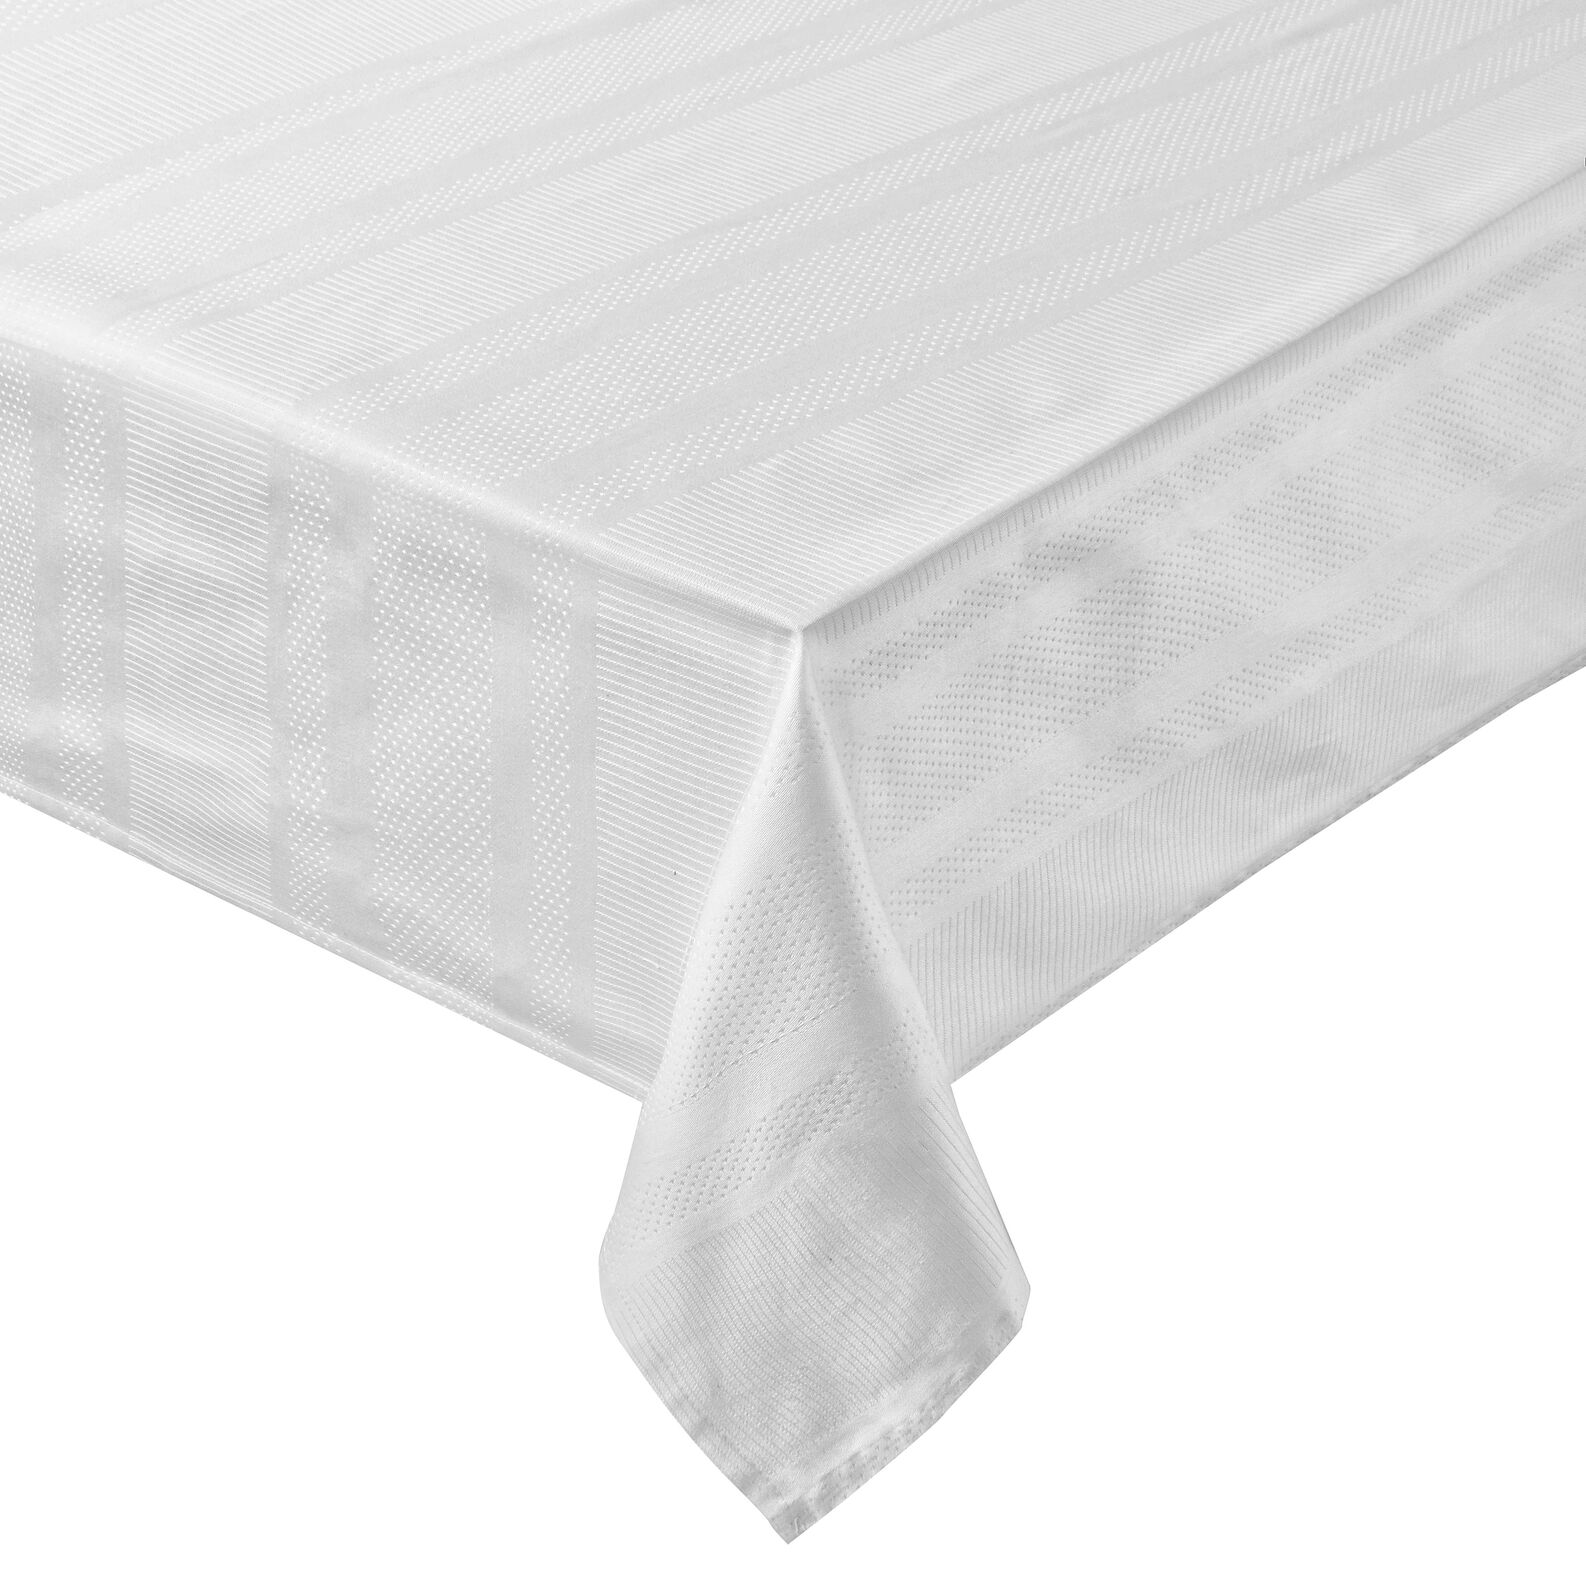 Tablecloth in 100% Egyptian cotton jacquard